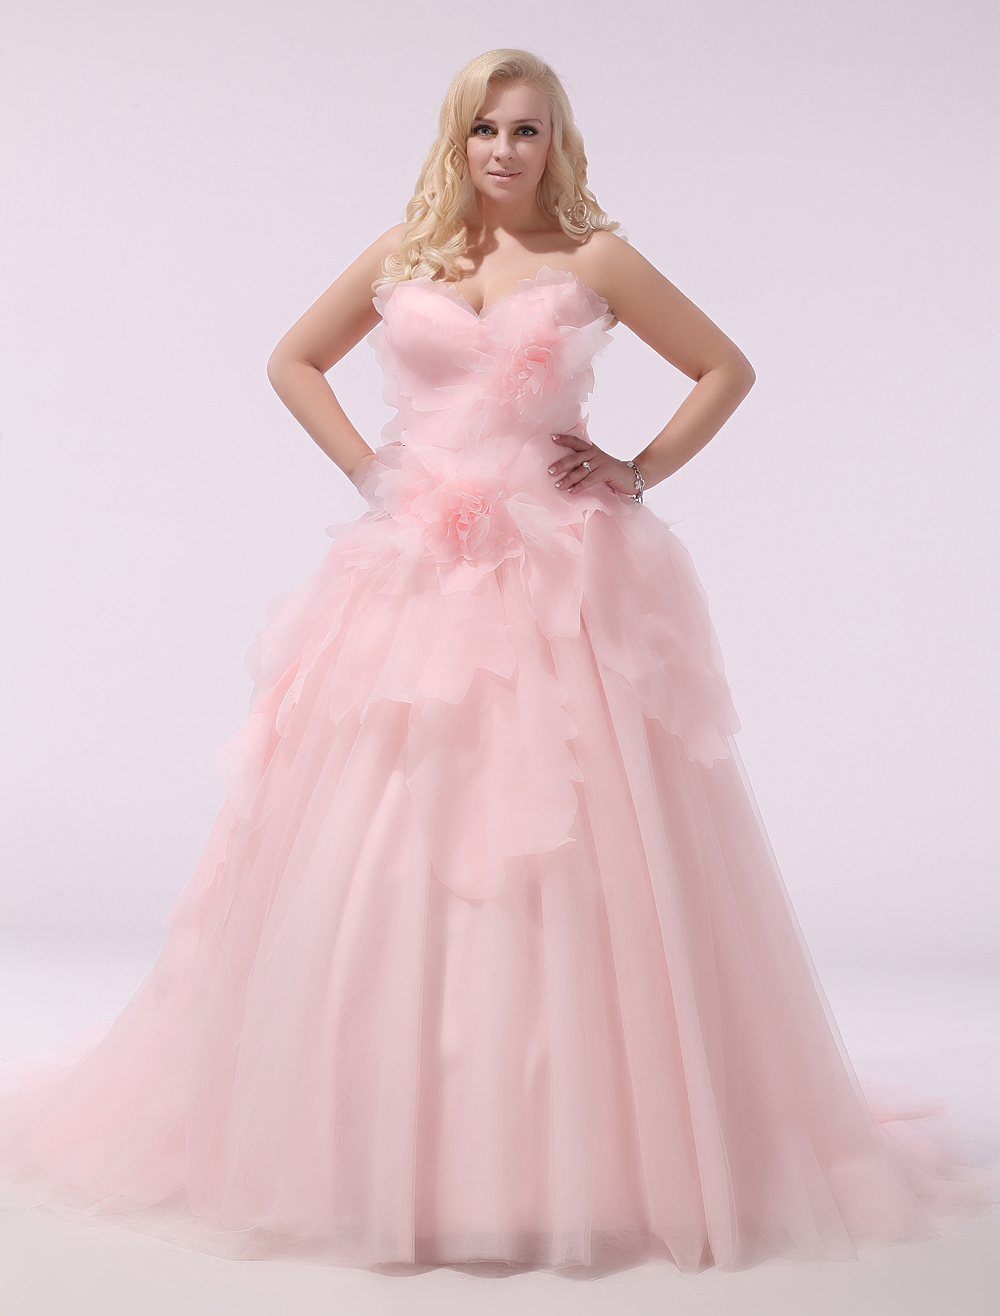 Plus Size Wedding Dress Pink Organza Bridal Gown Sweetheart Strapless A Line 3D Flowers Court Train Bridal Dress Milanoo (Pink Wedding Dress) photo